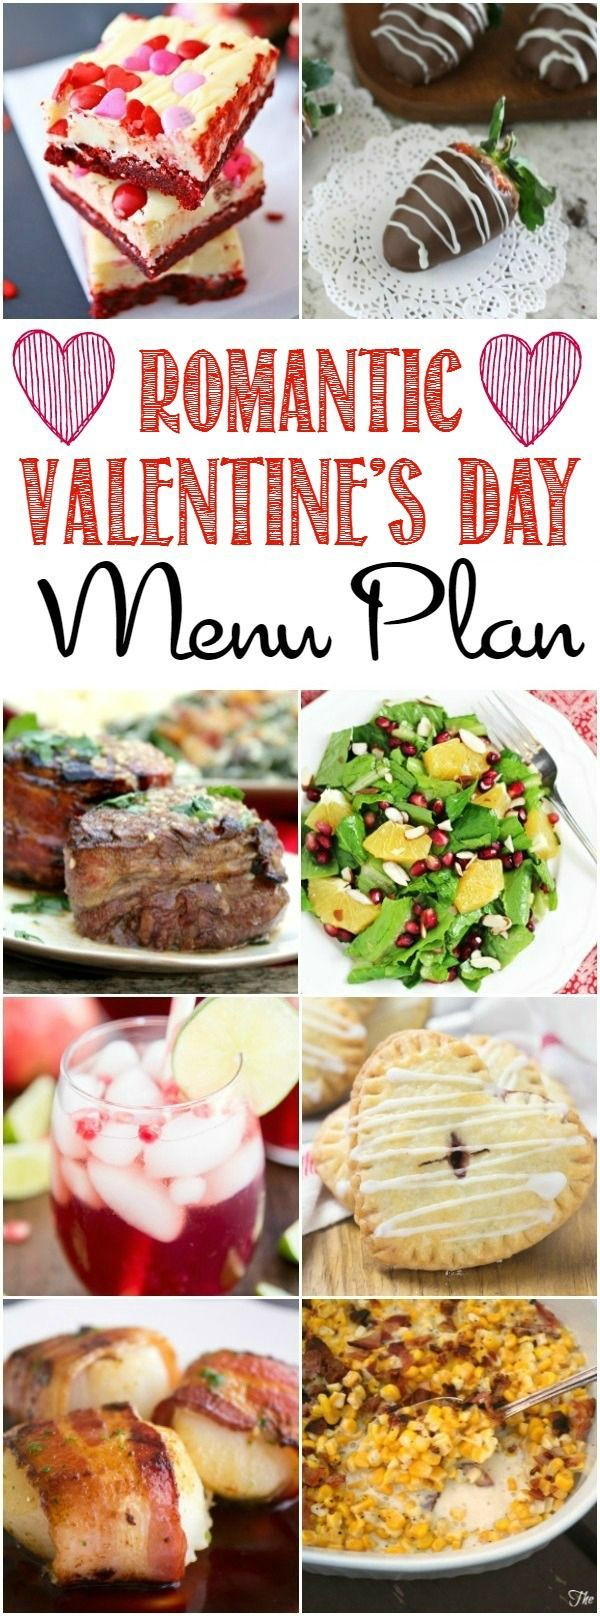 Best 25+ Romantic recipes ideas only on Pinterest | Saturday night ...